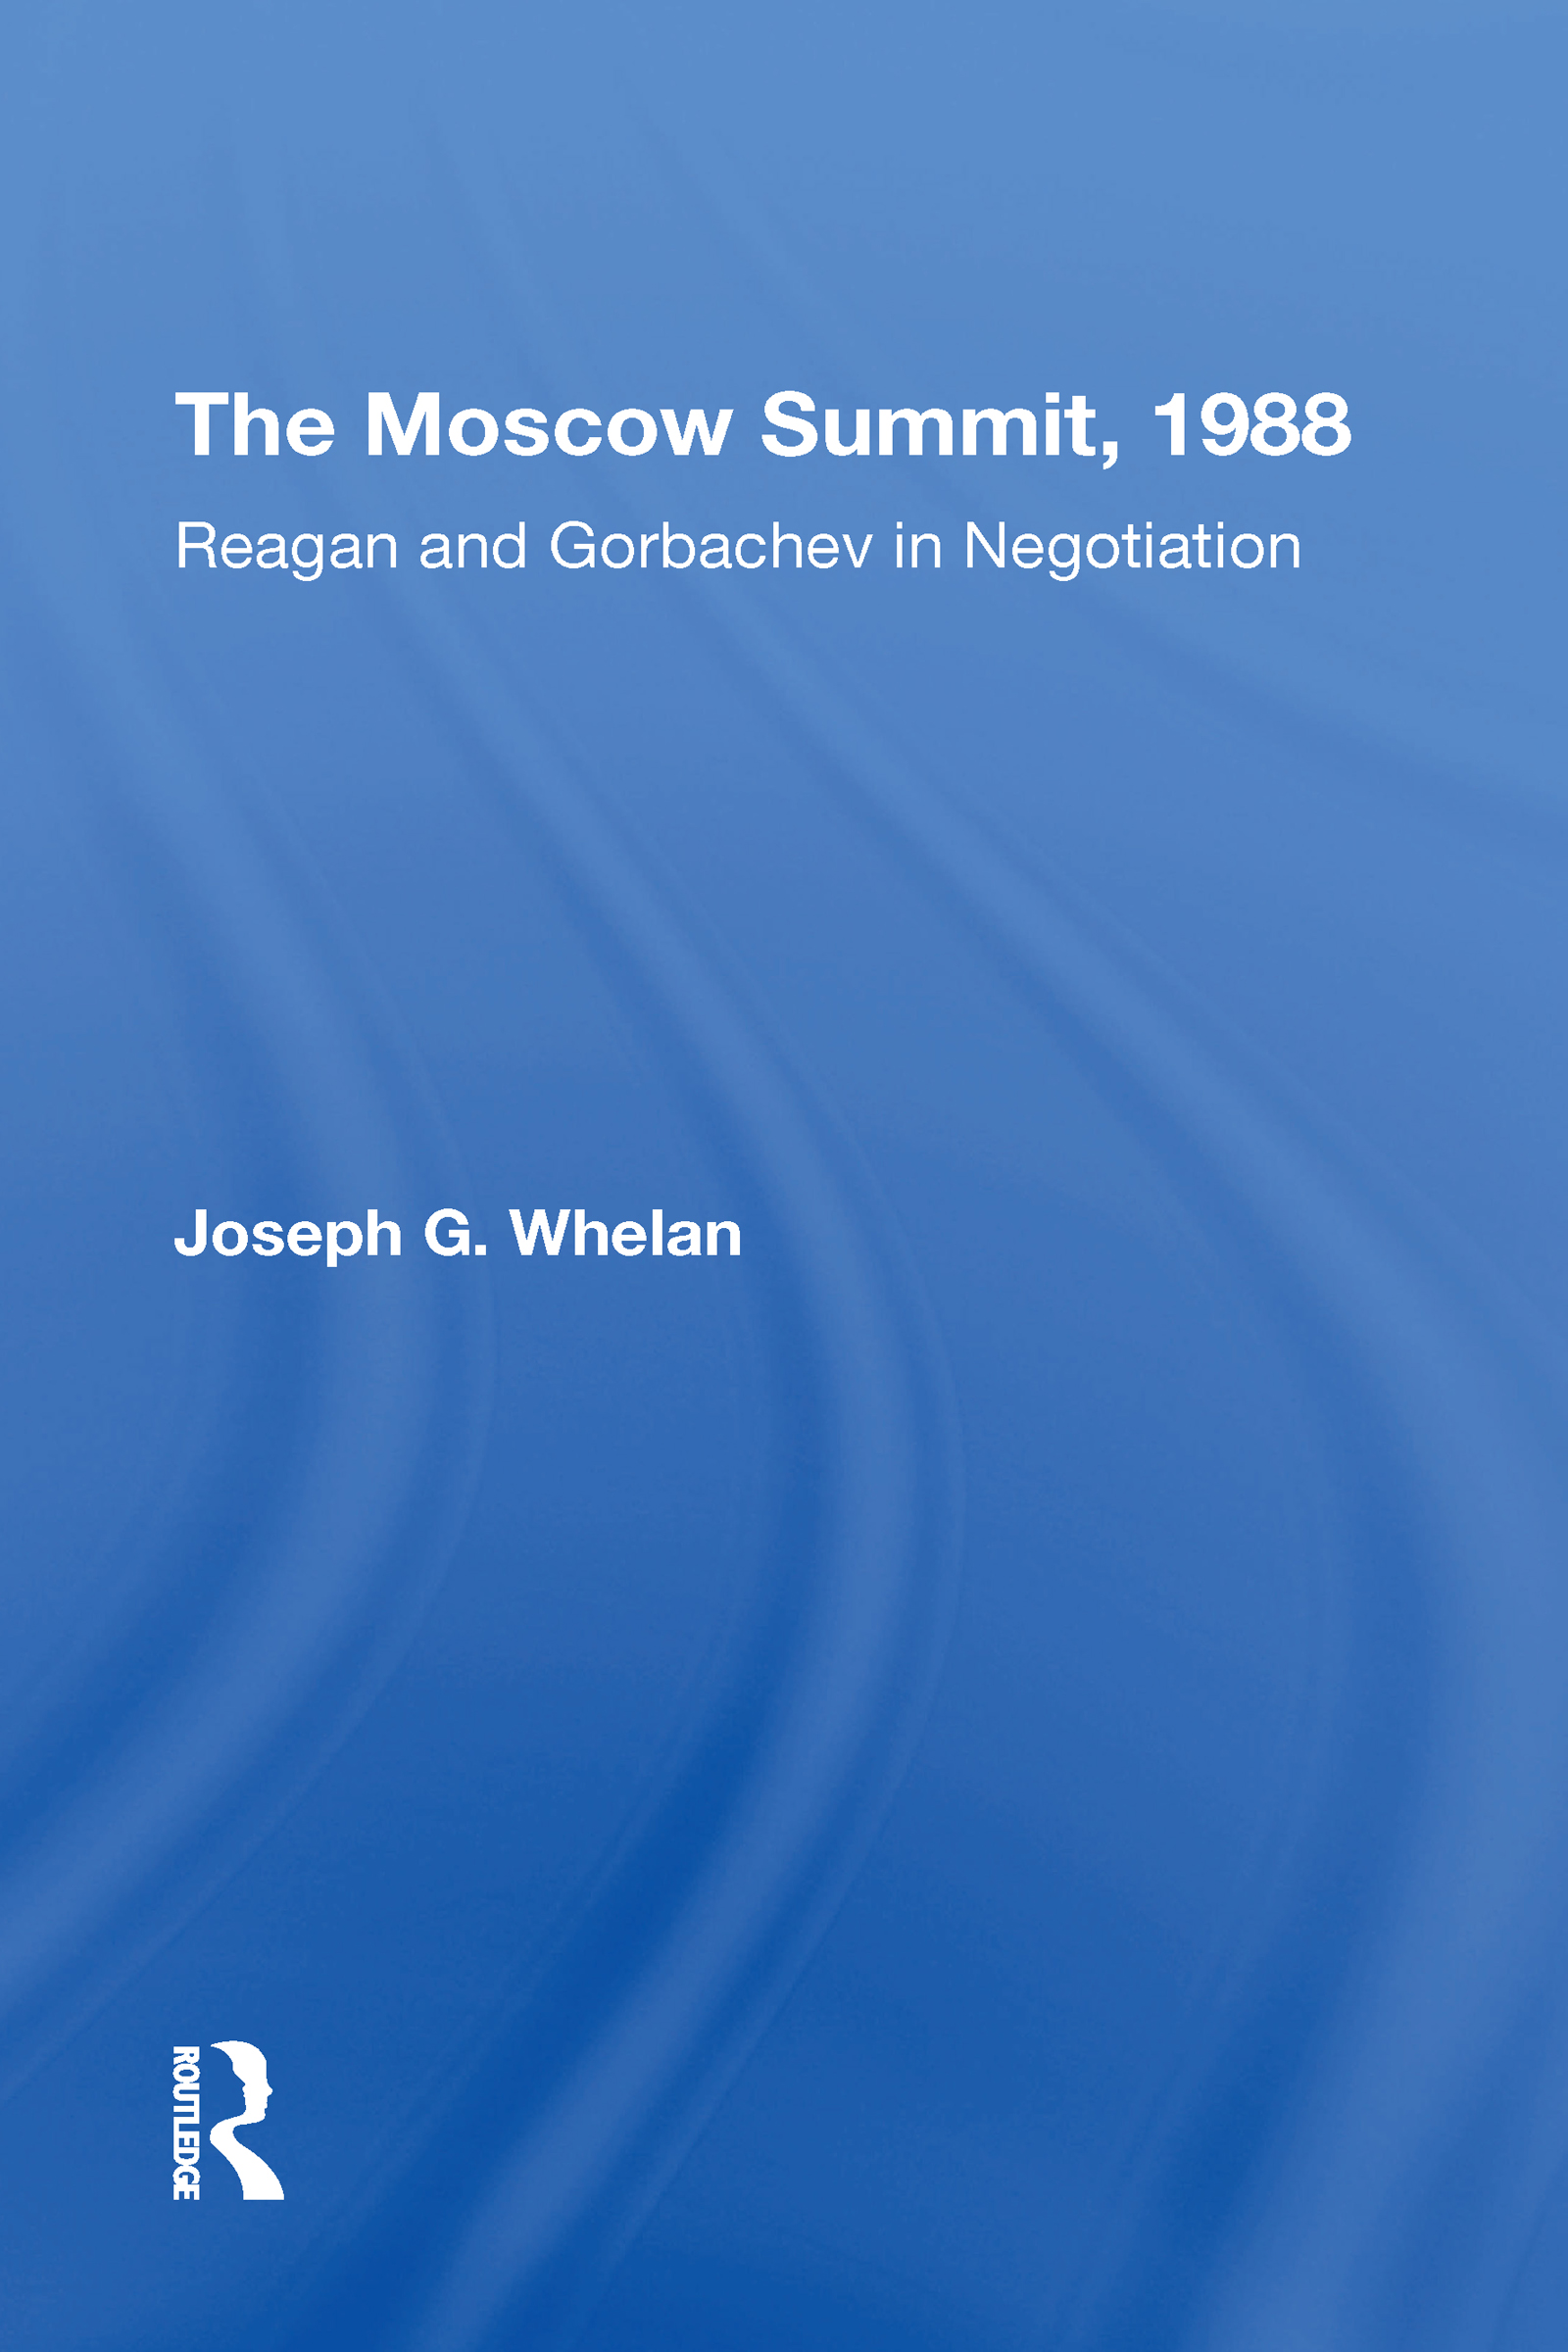 The Moscow Summit, 1988